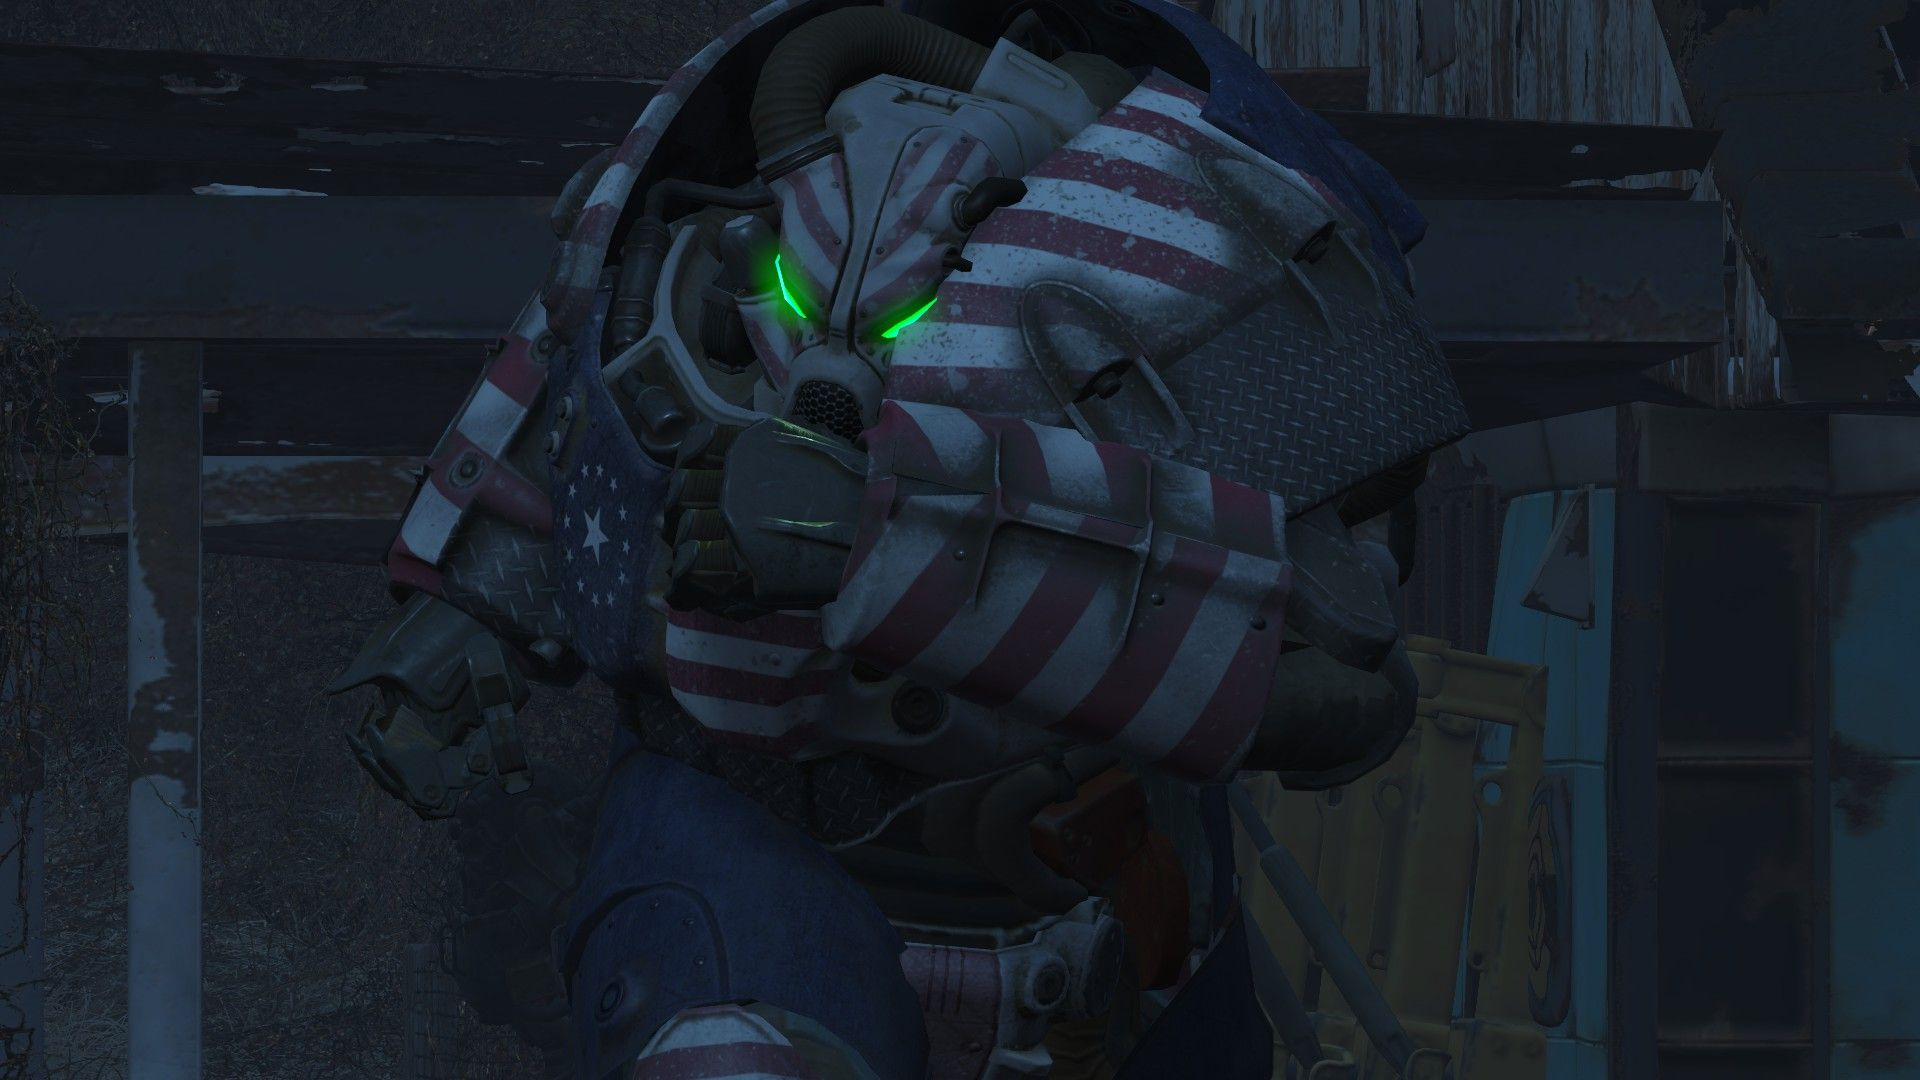 Undying Patriot Standalone Paint at Fallout 4 Nexus - Mods and community